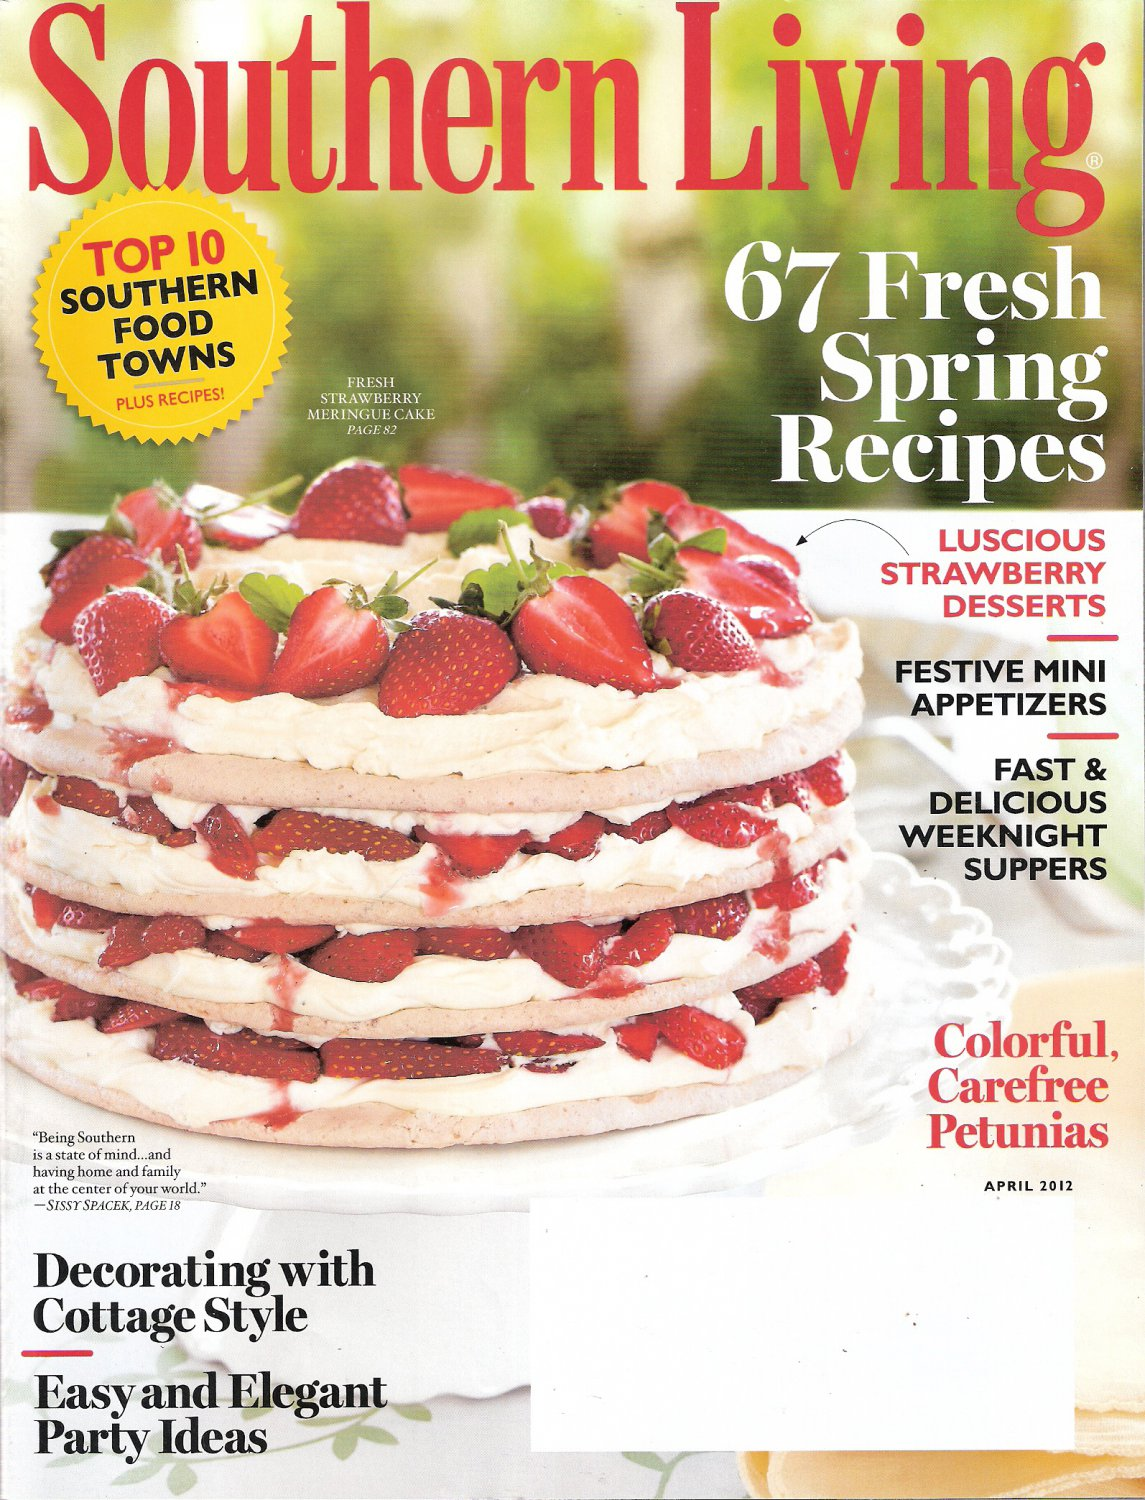 Southern Living Magazine April 2012 67 Fresh Spring Recipes